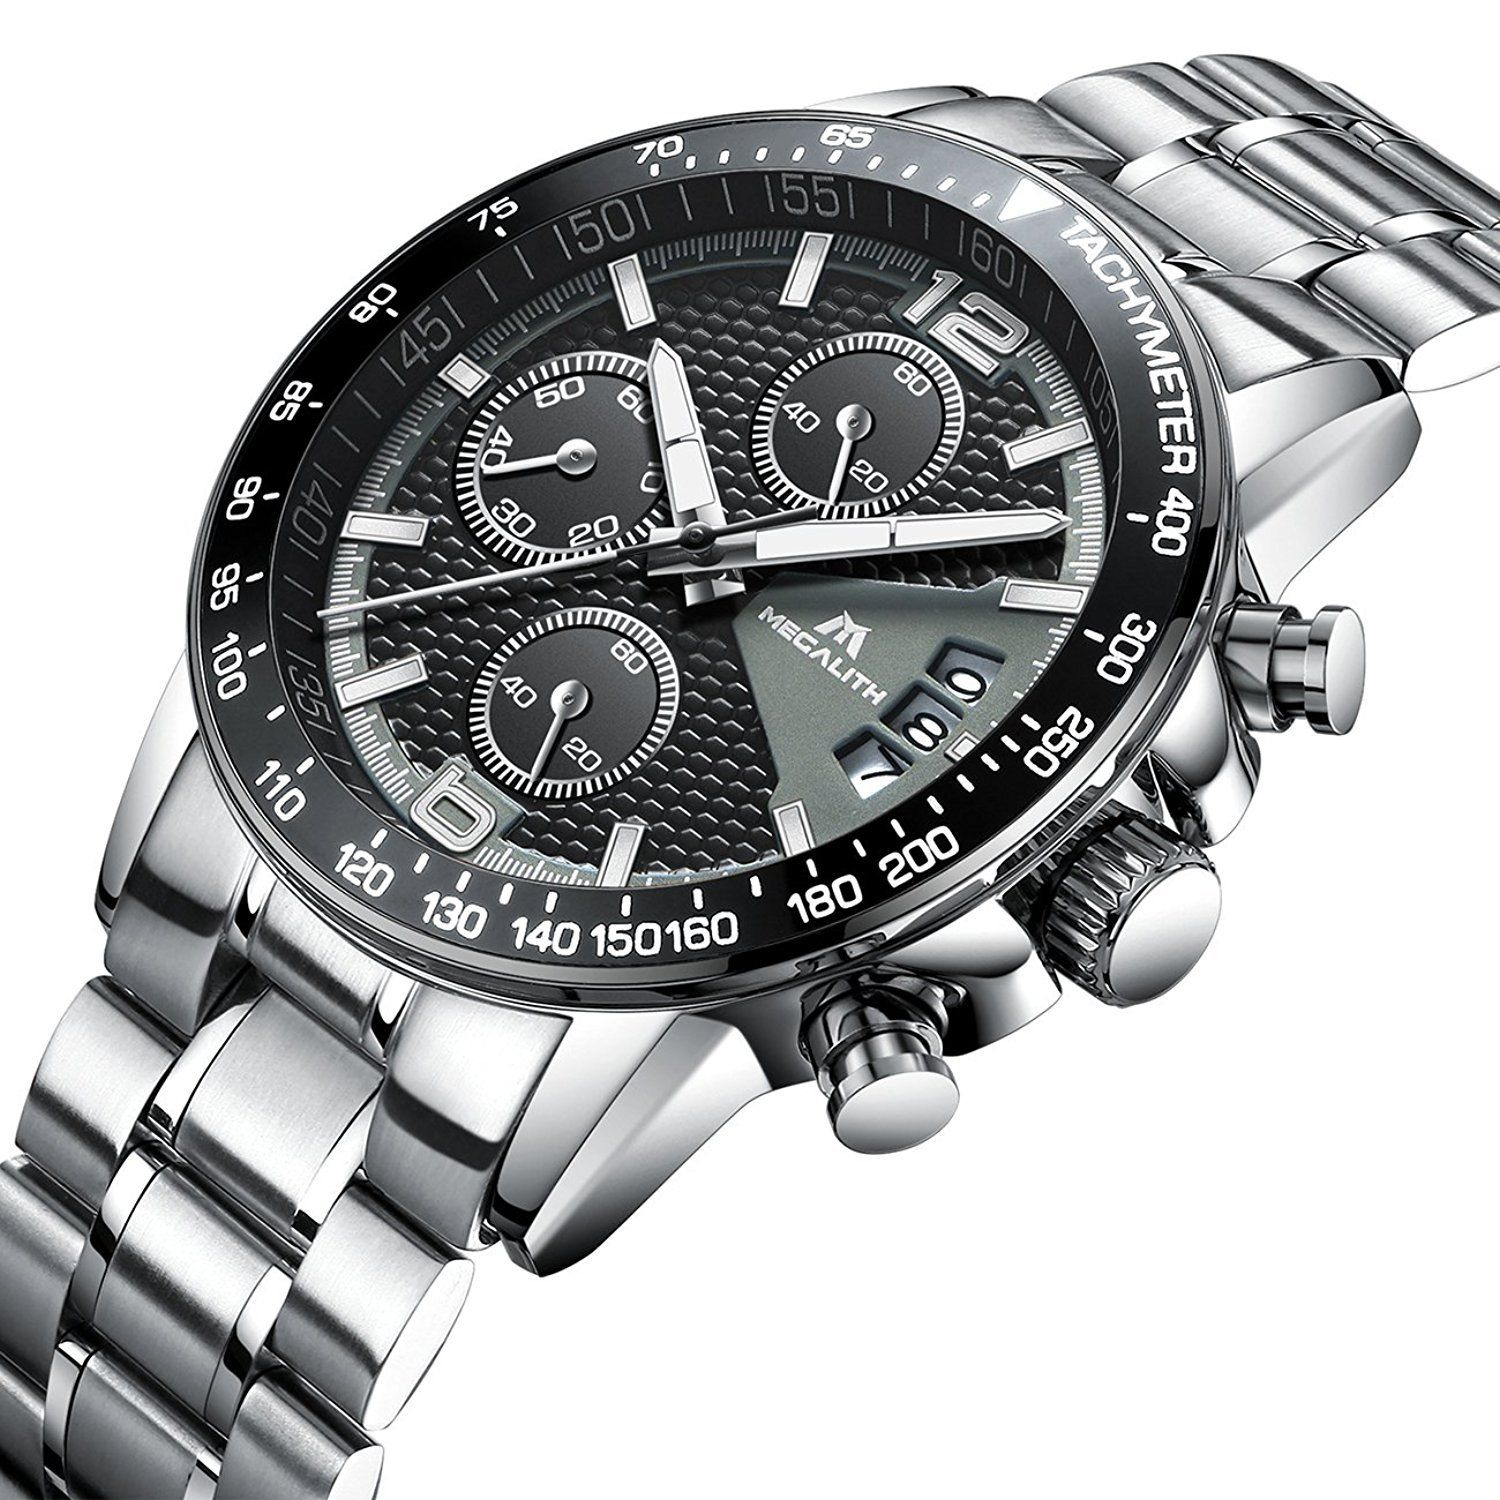 5e994f1b6 Model: Gladiator Megalith Movement: Japan Quartz Features: Chronograph, Day  Calendar Water Resistance Depth: 3Bar Case Material: Stainless Steel Band  ...